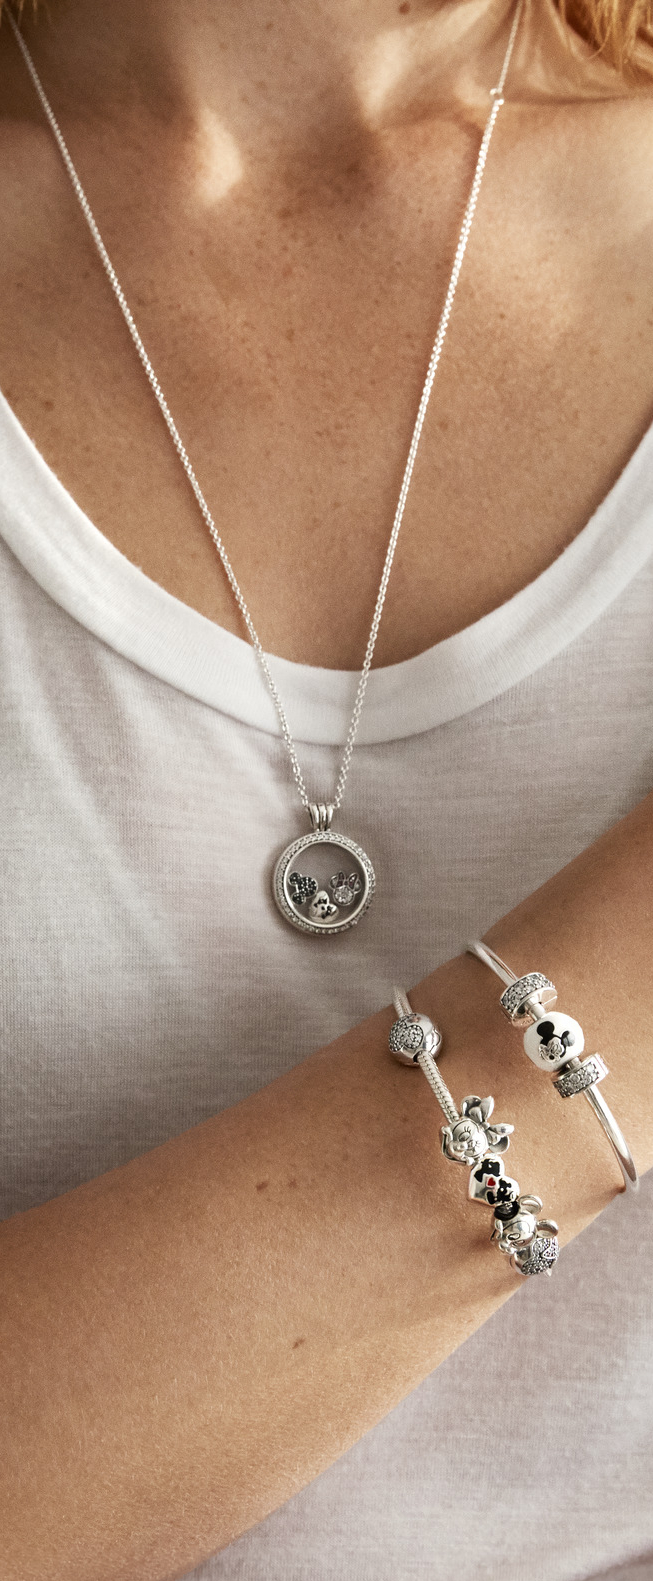 2018 Silver & Gold Jewelry Collection | Disney In 2019 | Pandora For Best And Newest Disney Mickey Floating Locket Necklaces (Gallery 19 of 25)